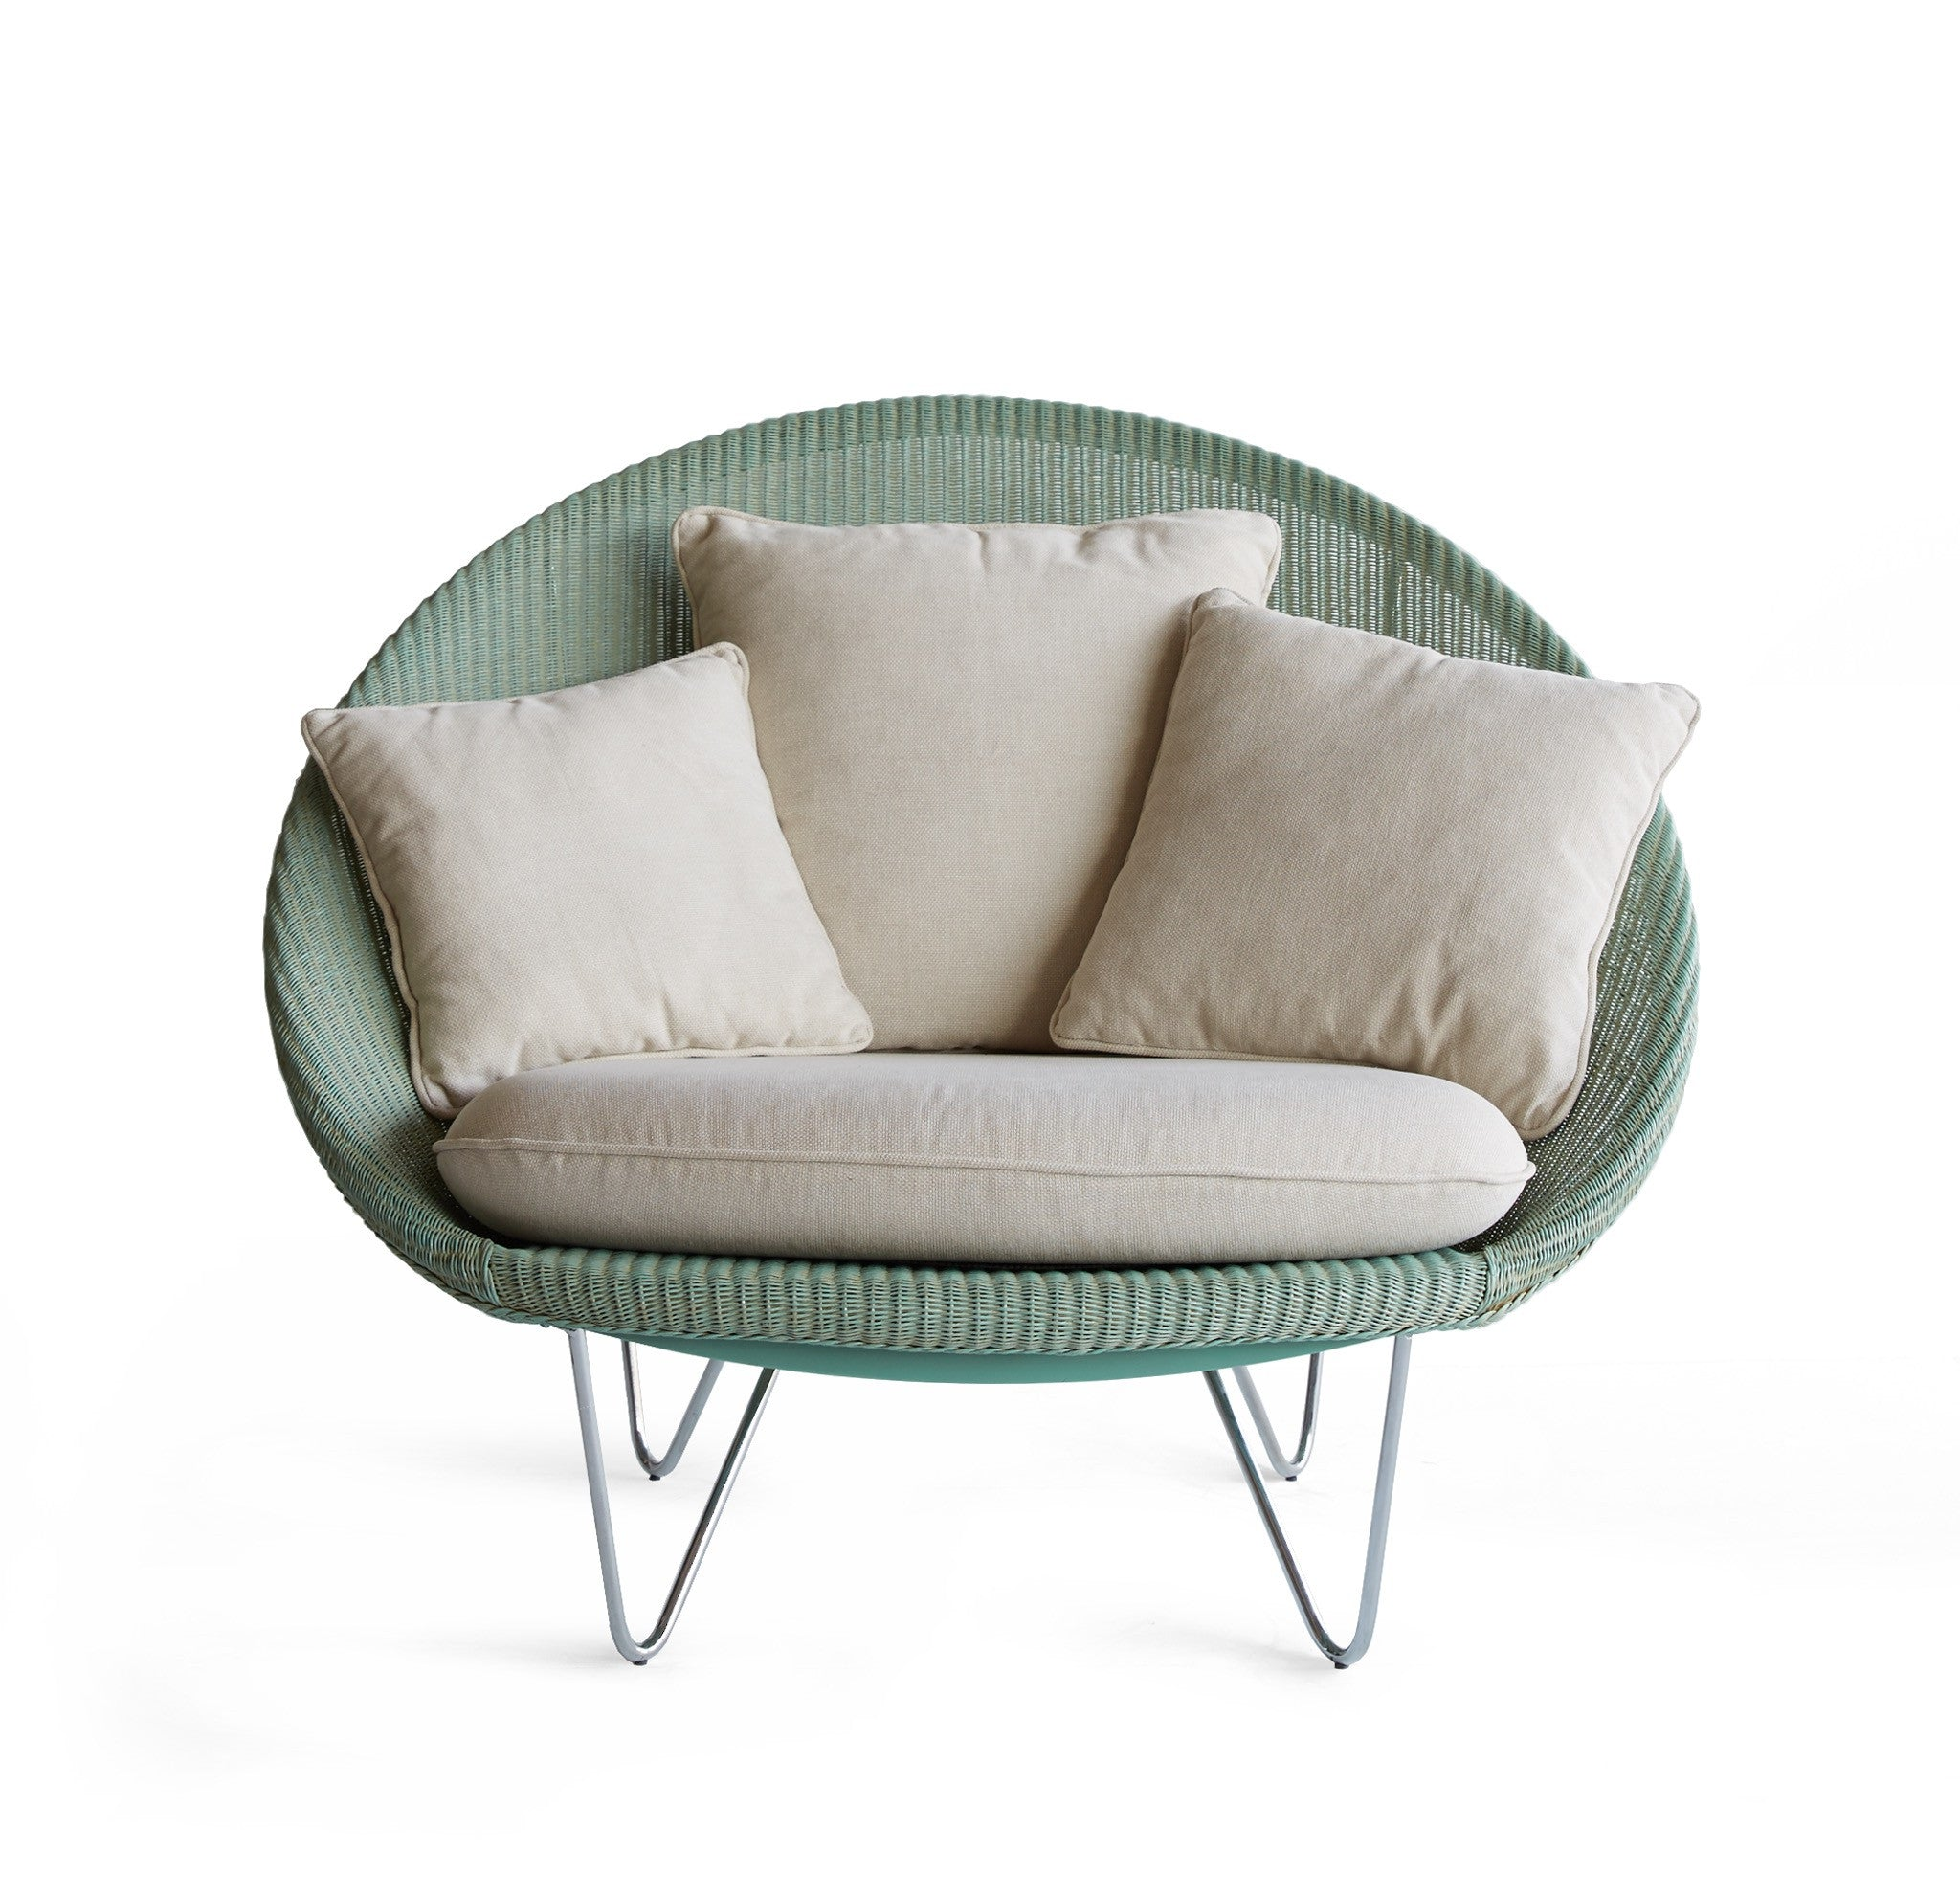 Joe Lounge Chair | Aqua MW - Vincent Sheppard - Originals Furniture - Singapore - 1